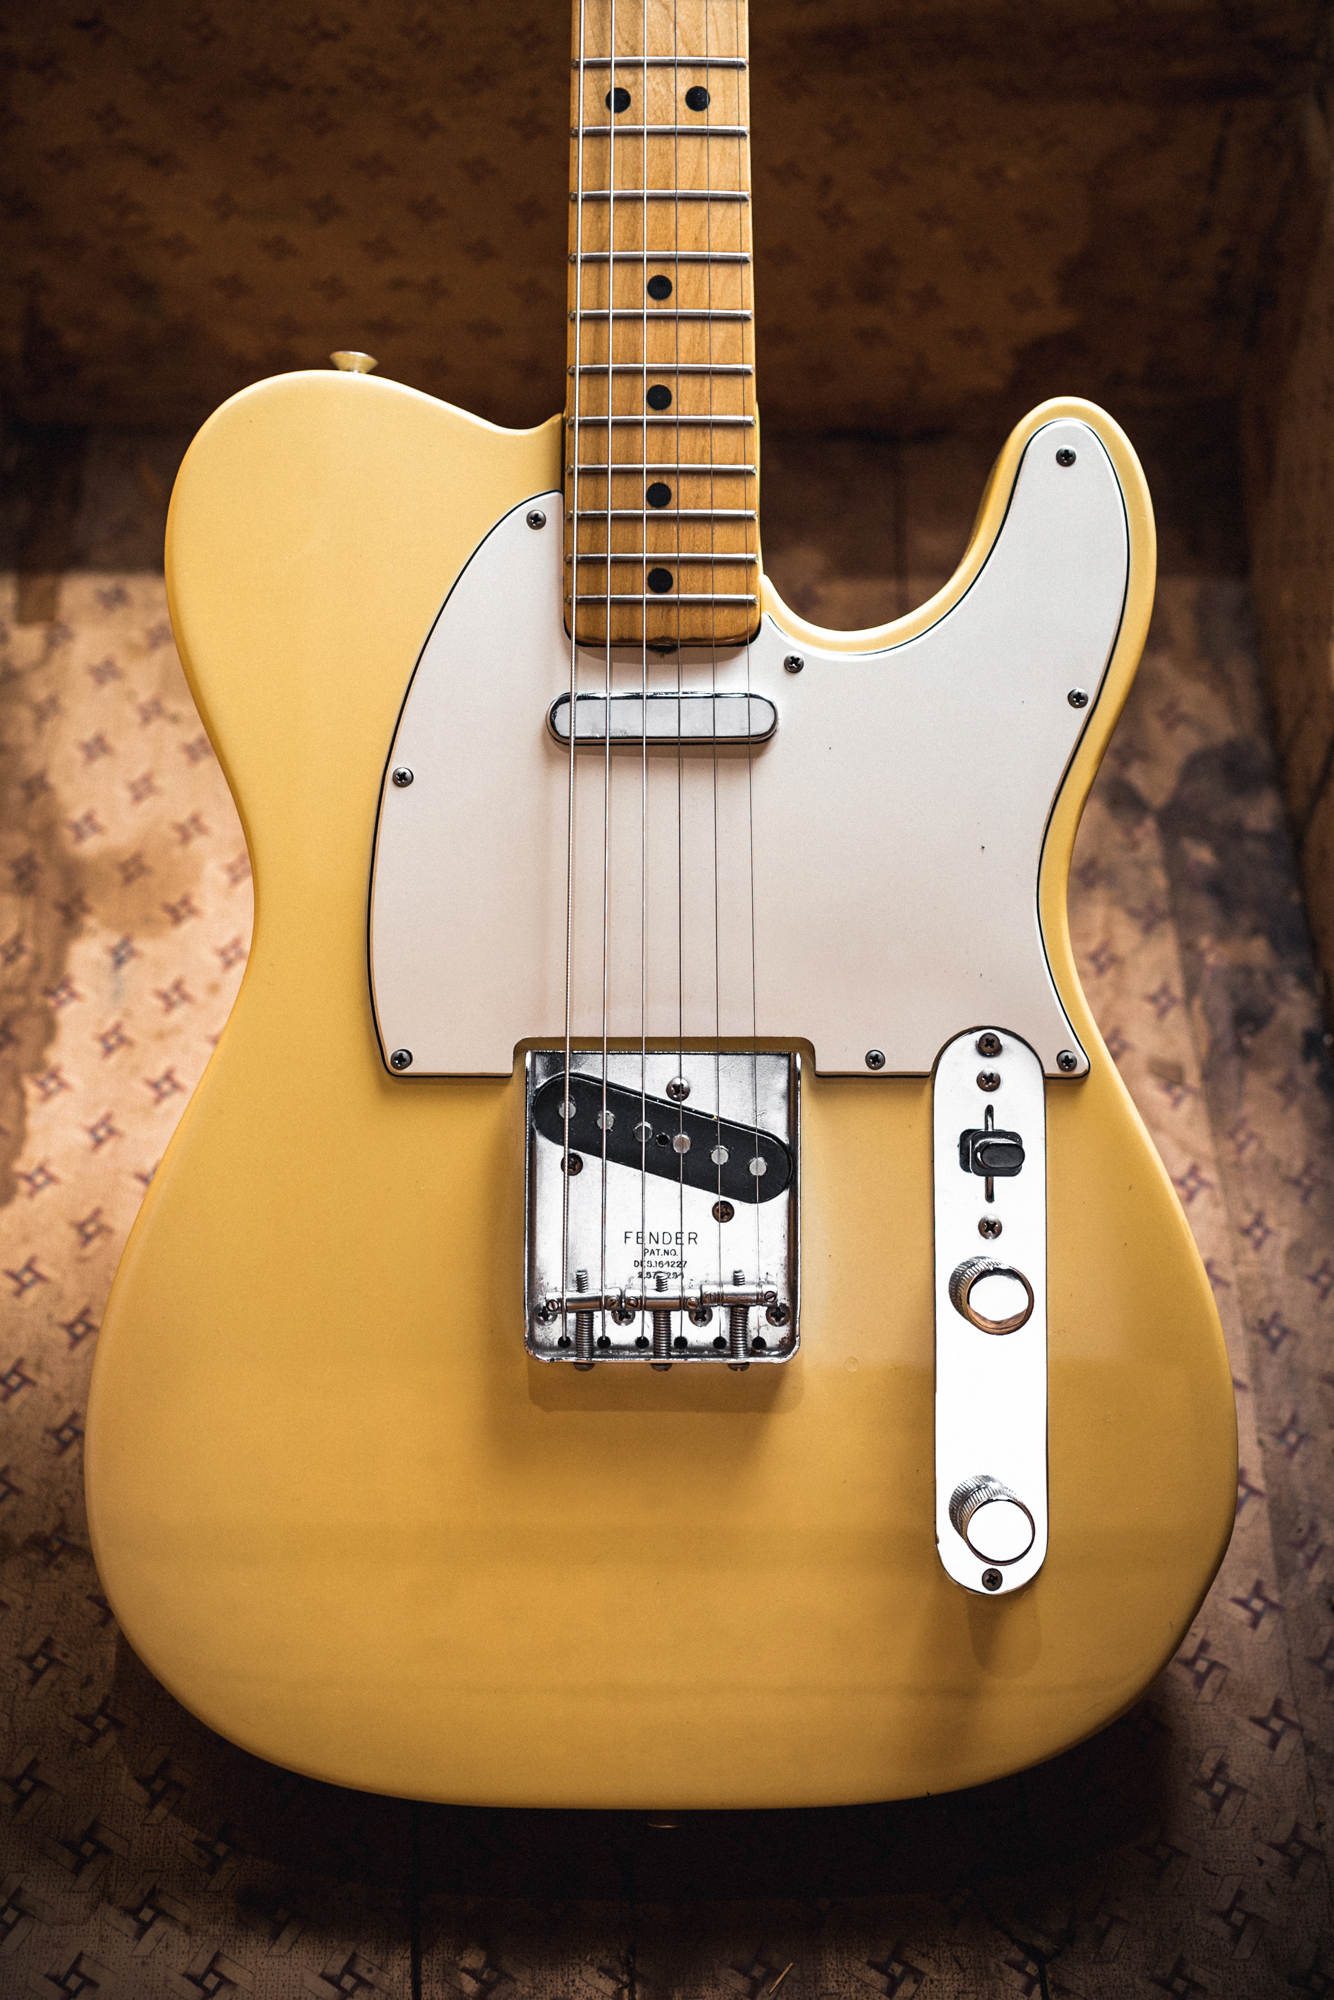 Great Looking Telecaster Guitars 3022 Fenderstratocaster Telecasterguitars Fender Telecaster Fender Guitars Telecaster